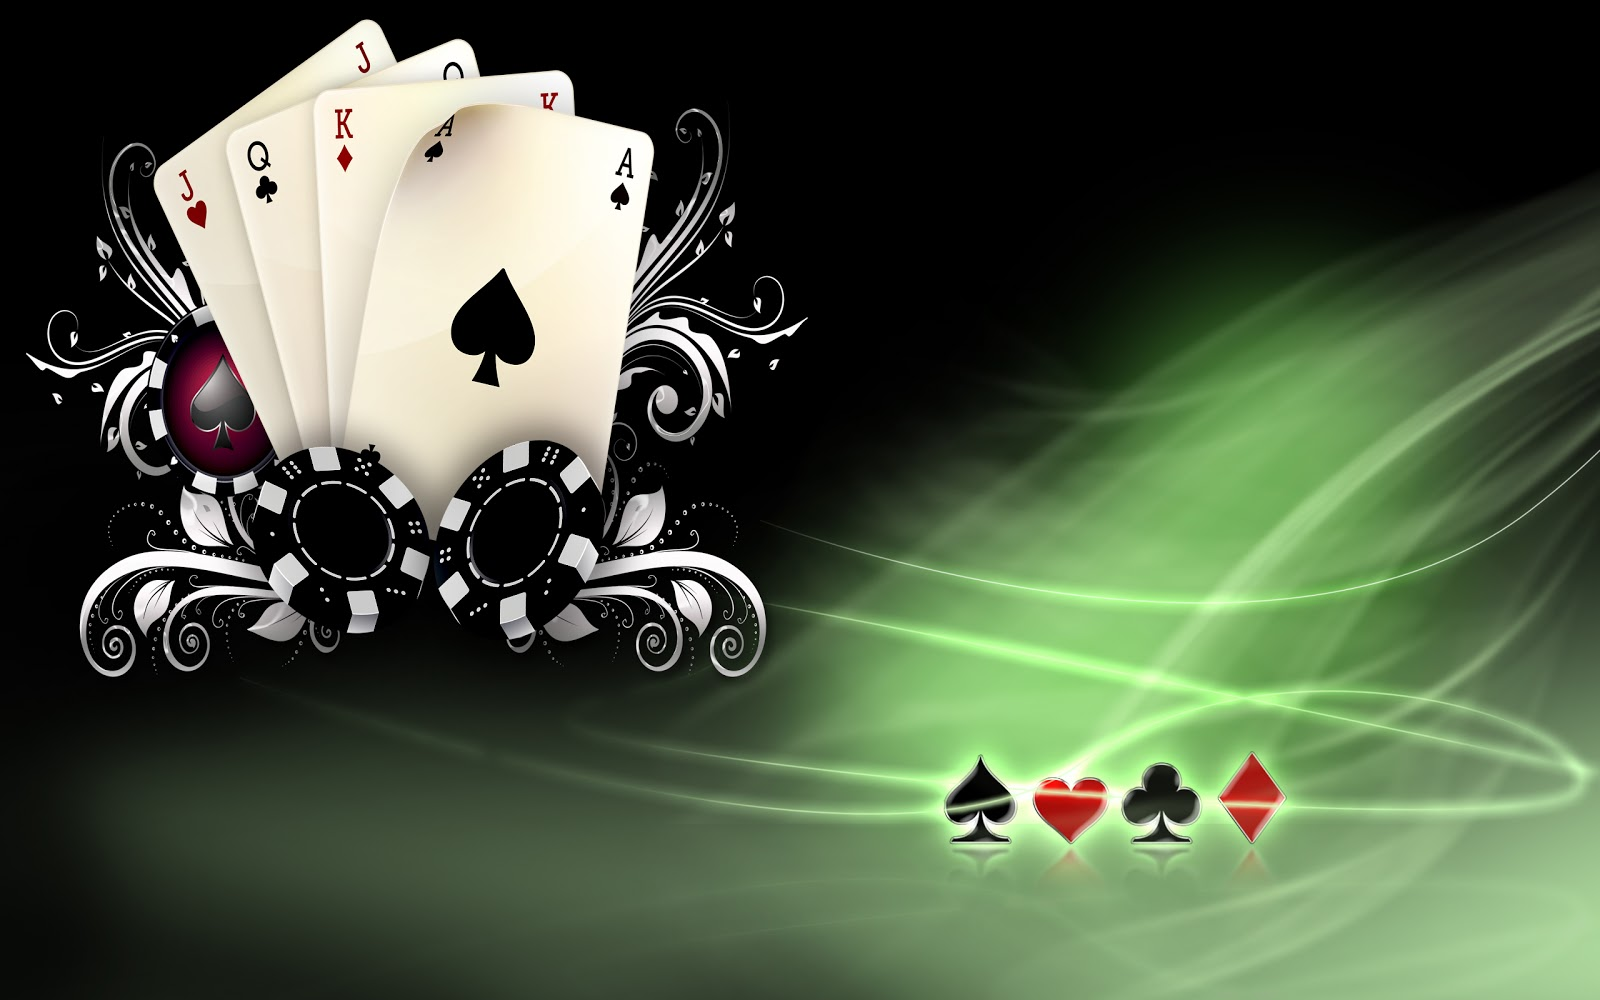 Poker Wallpapers Sexy Poker Wallpaper Cards Chips Wallpaper 1600x1000